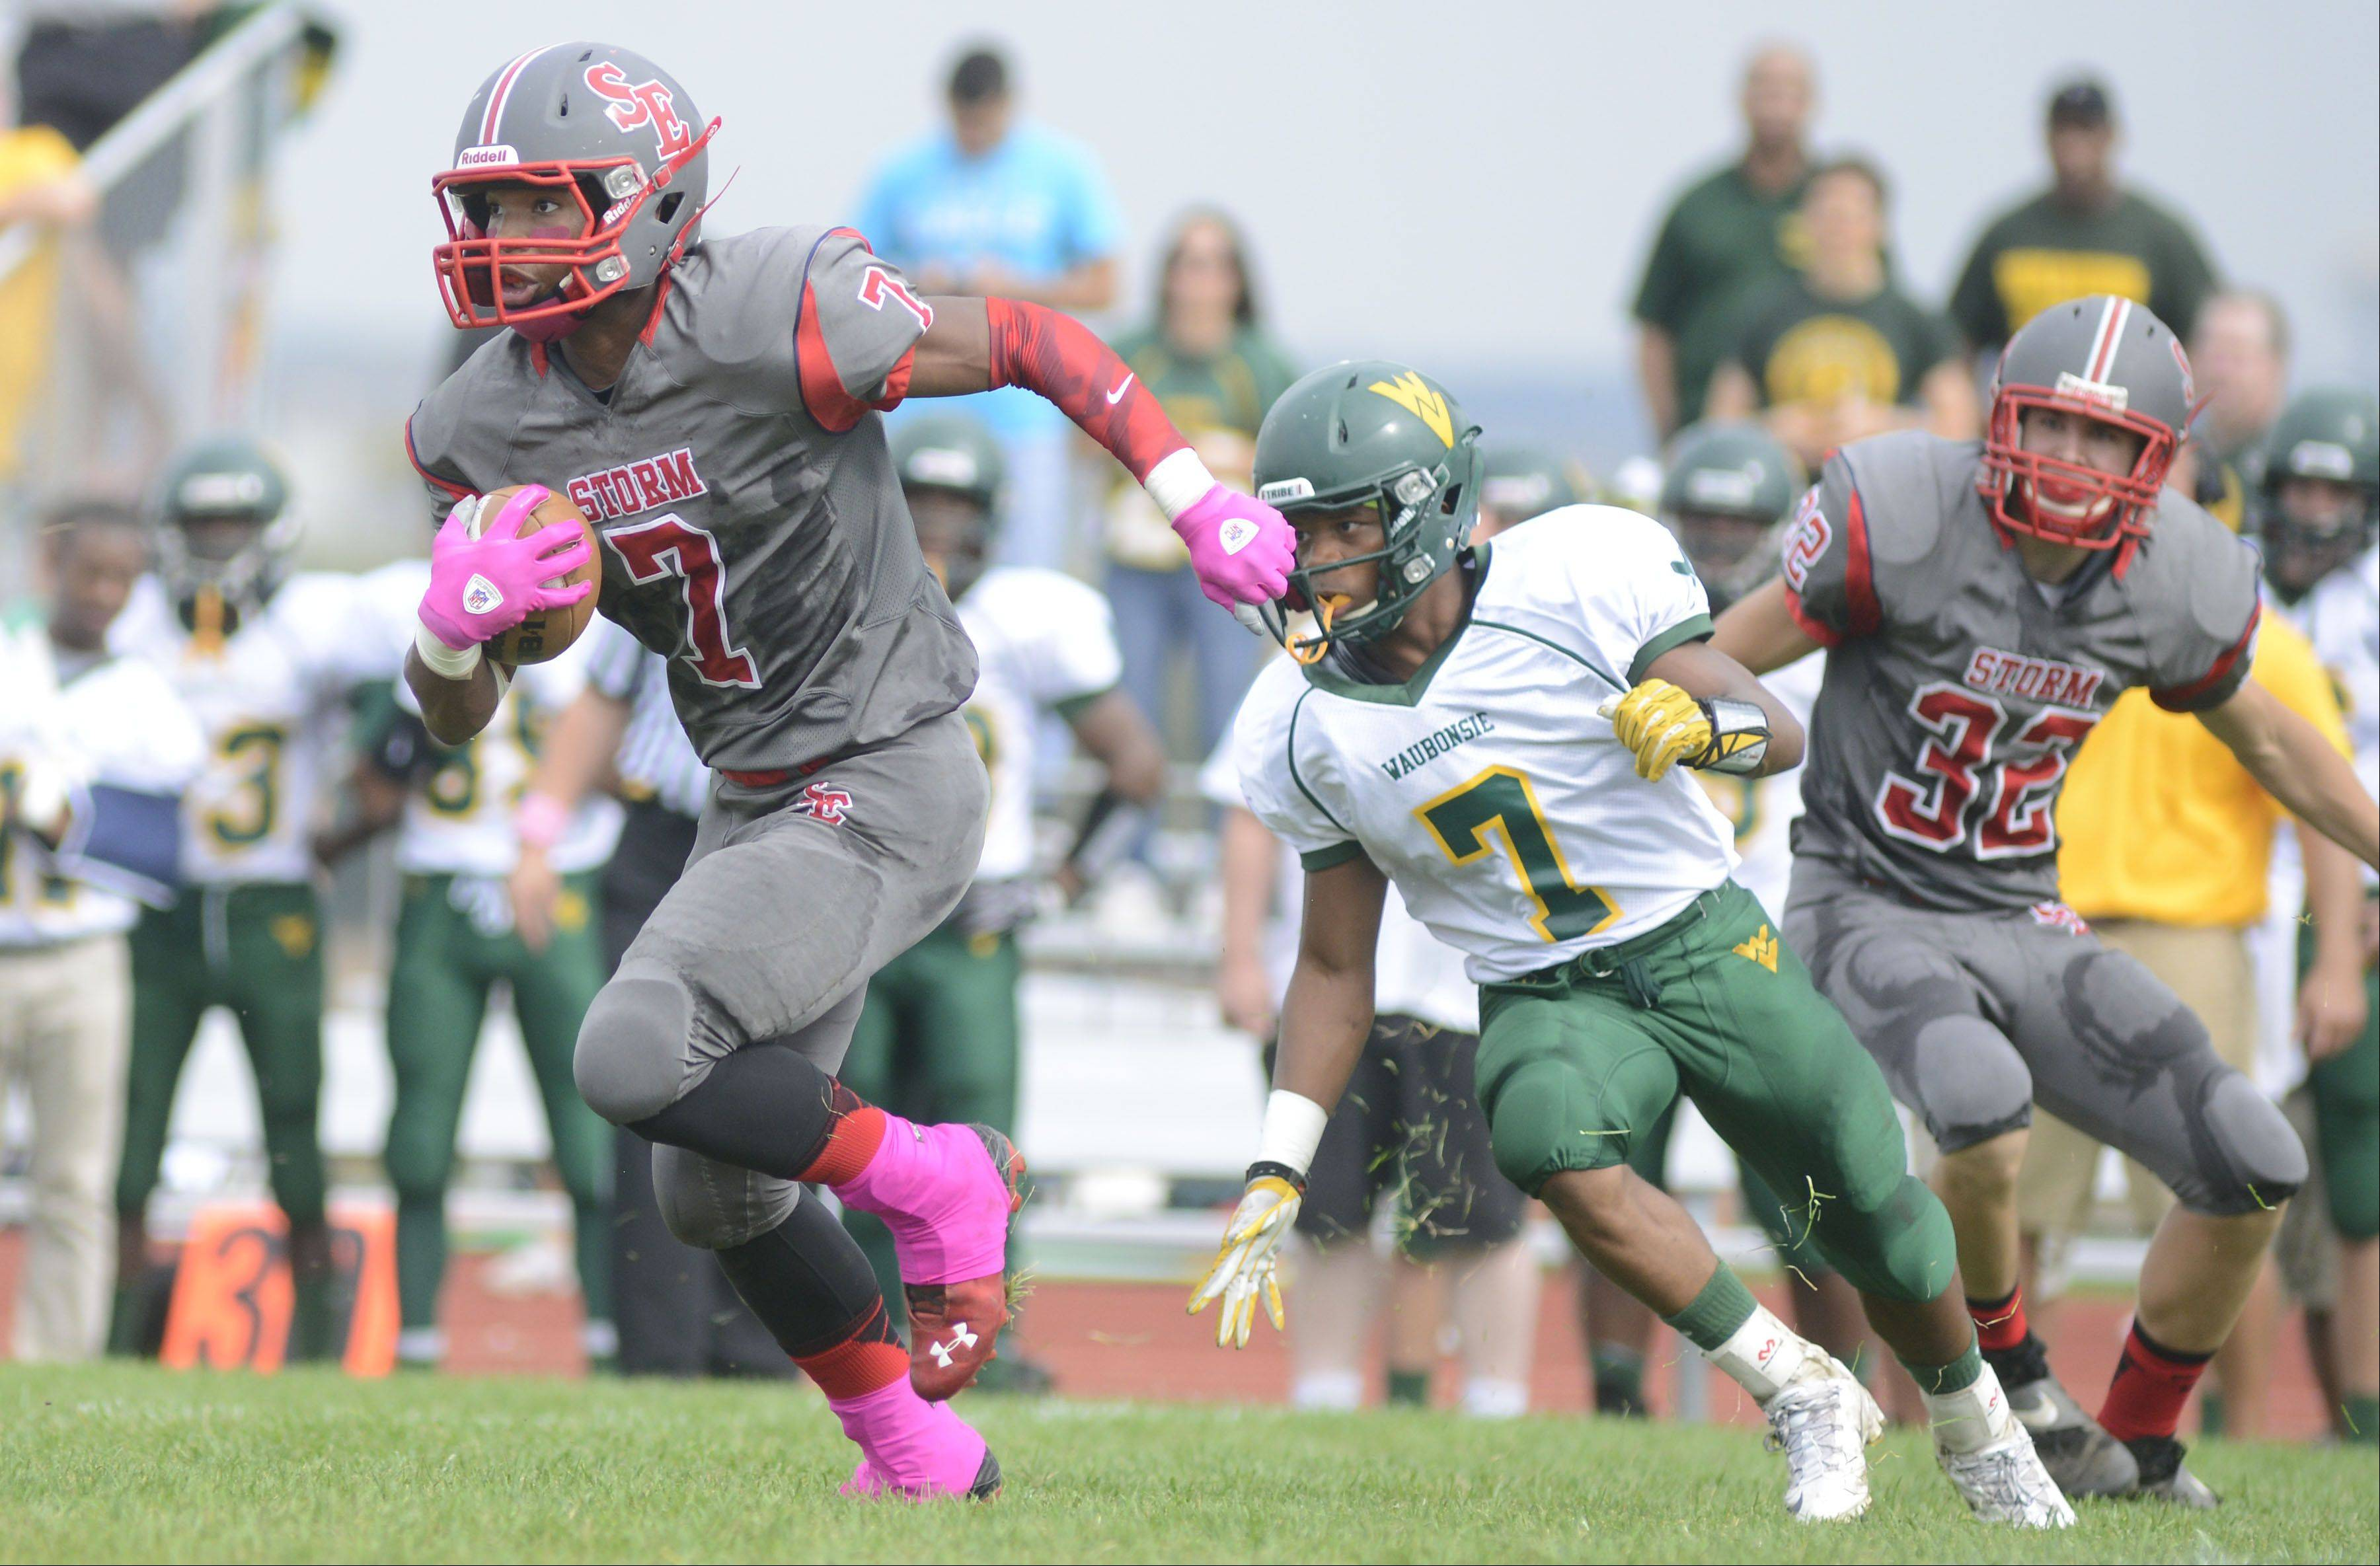 South Elgin's Willy King zips past Waubonsie Valley's Tony Durns Saturday.